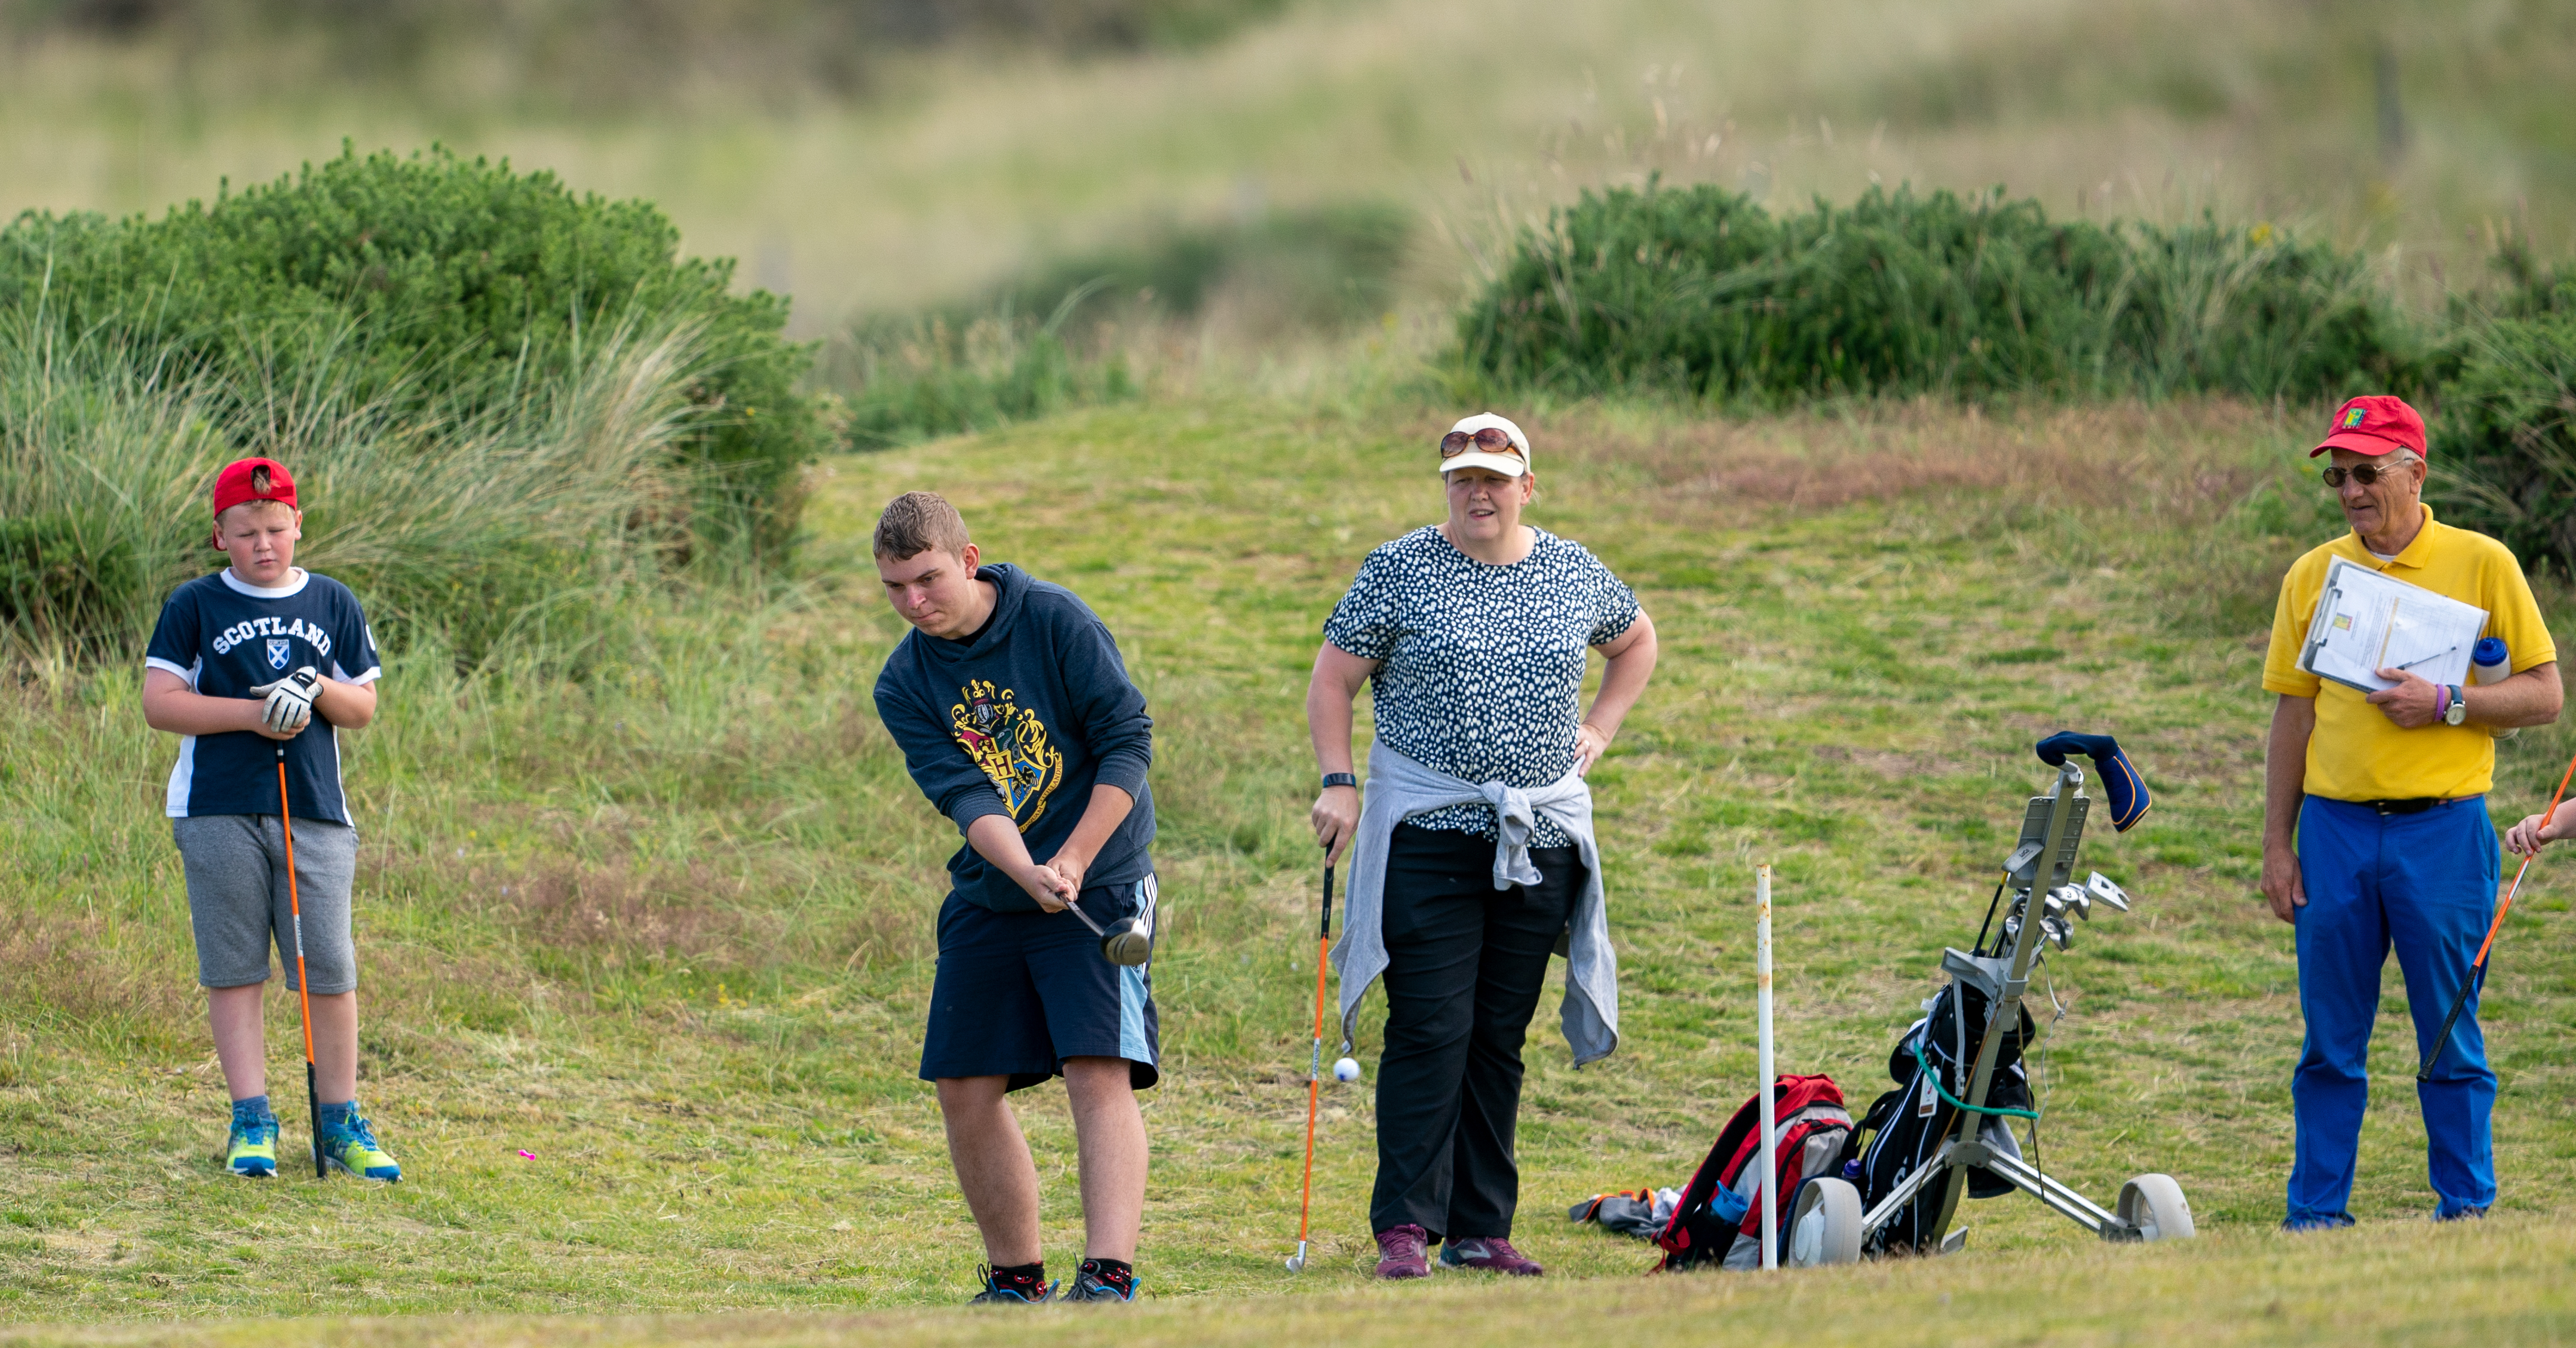 Ethan Howells tees off during the golf event at Covesea.